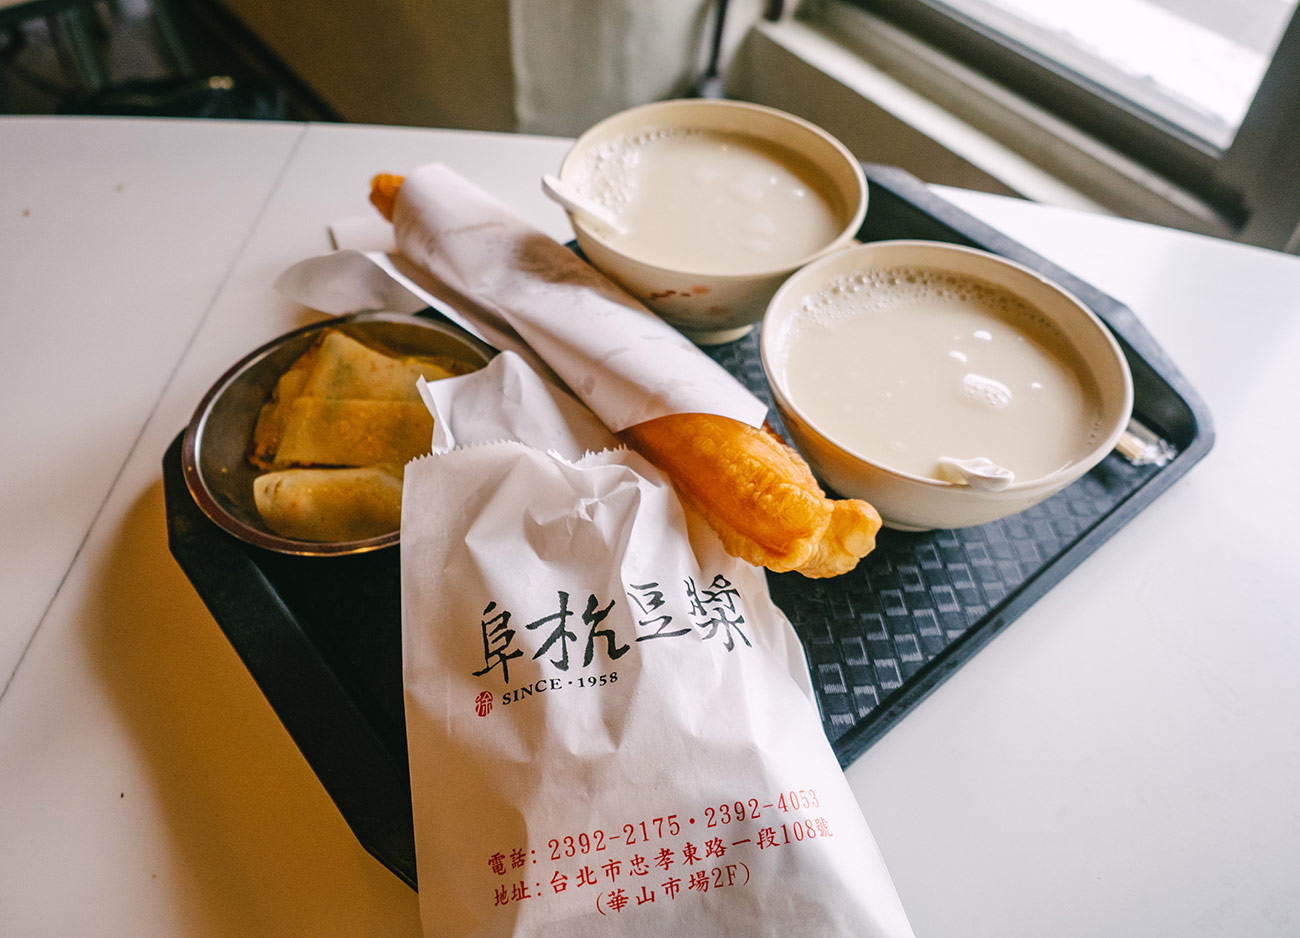 Fu Hang Dou Jiang - Soya milk & you tiao